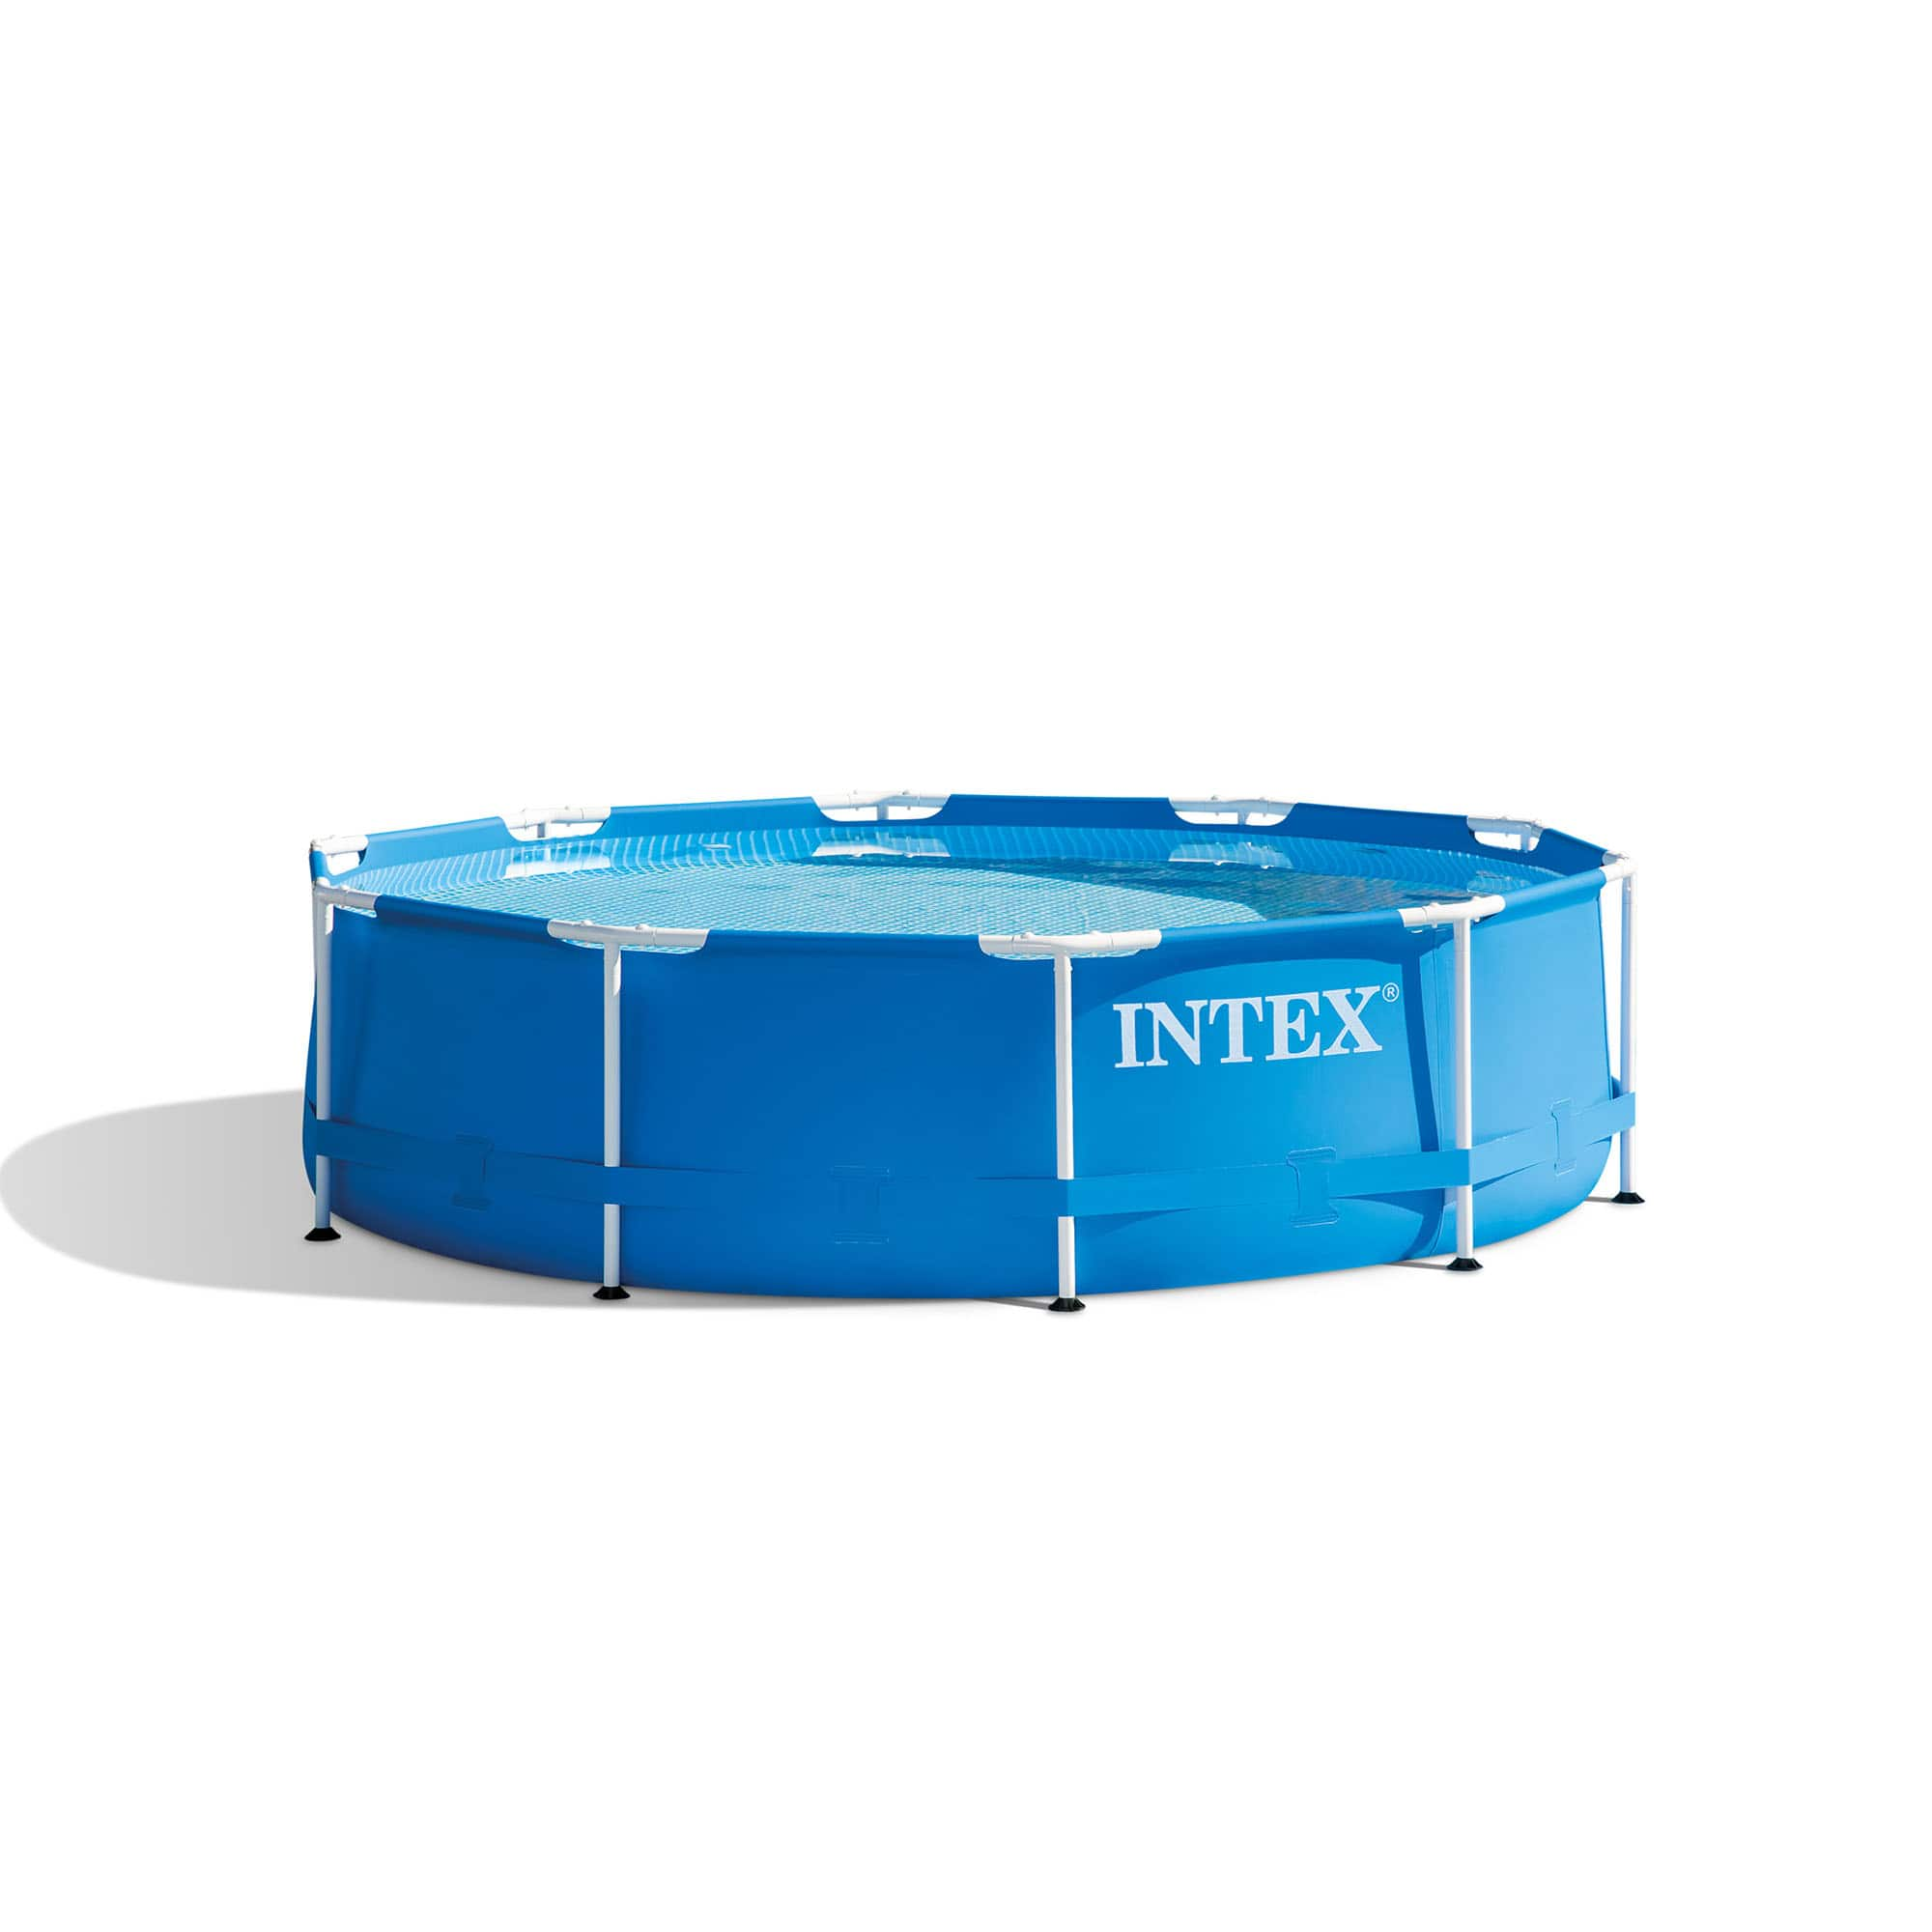 """Intex 10' x 30"""" Metal Frame Above Ground Swimming Pool with Filter Pump - $249.99 at Walmart"""